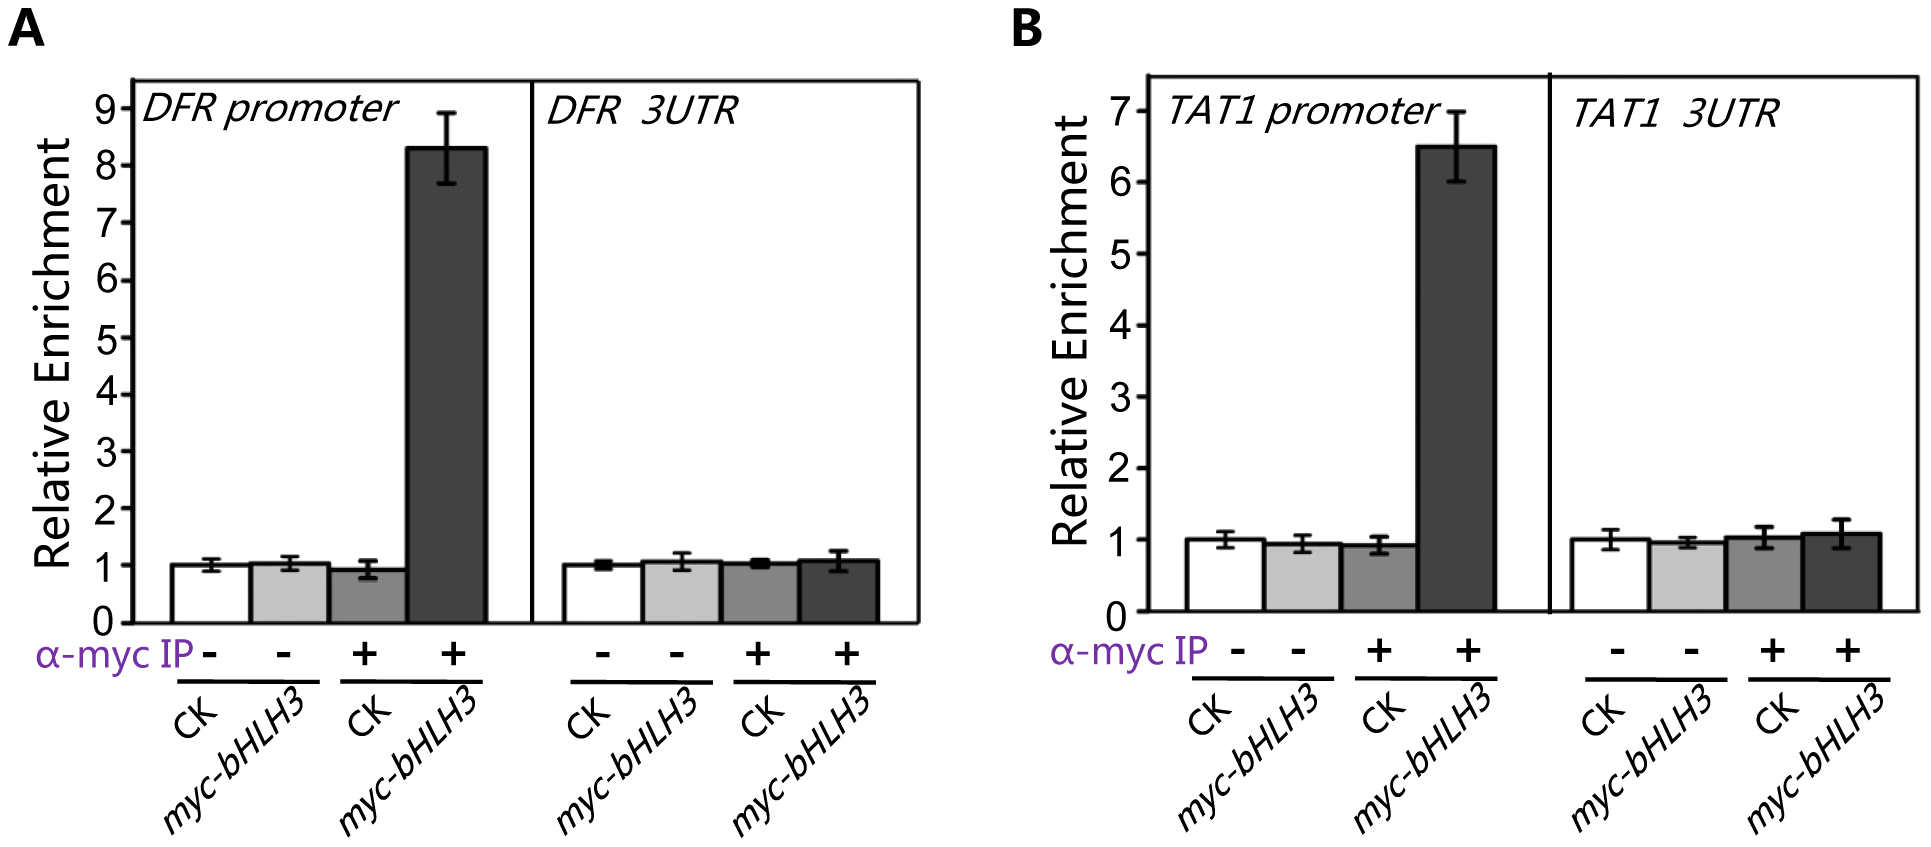 bHLH3 directly binds to promoter sequences of <i>TAT1</i> and <i>DFR</i> in ChIP-PCR assay.